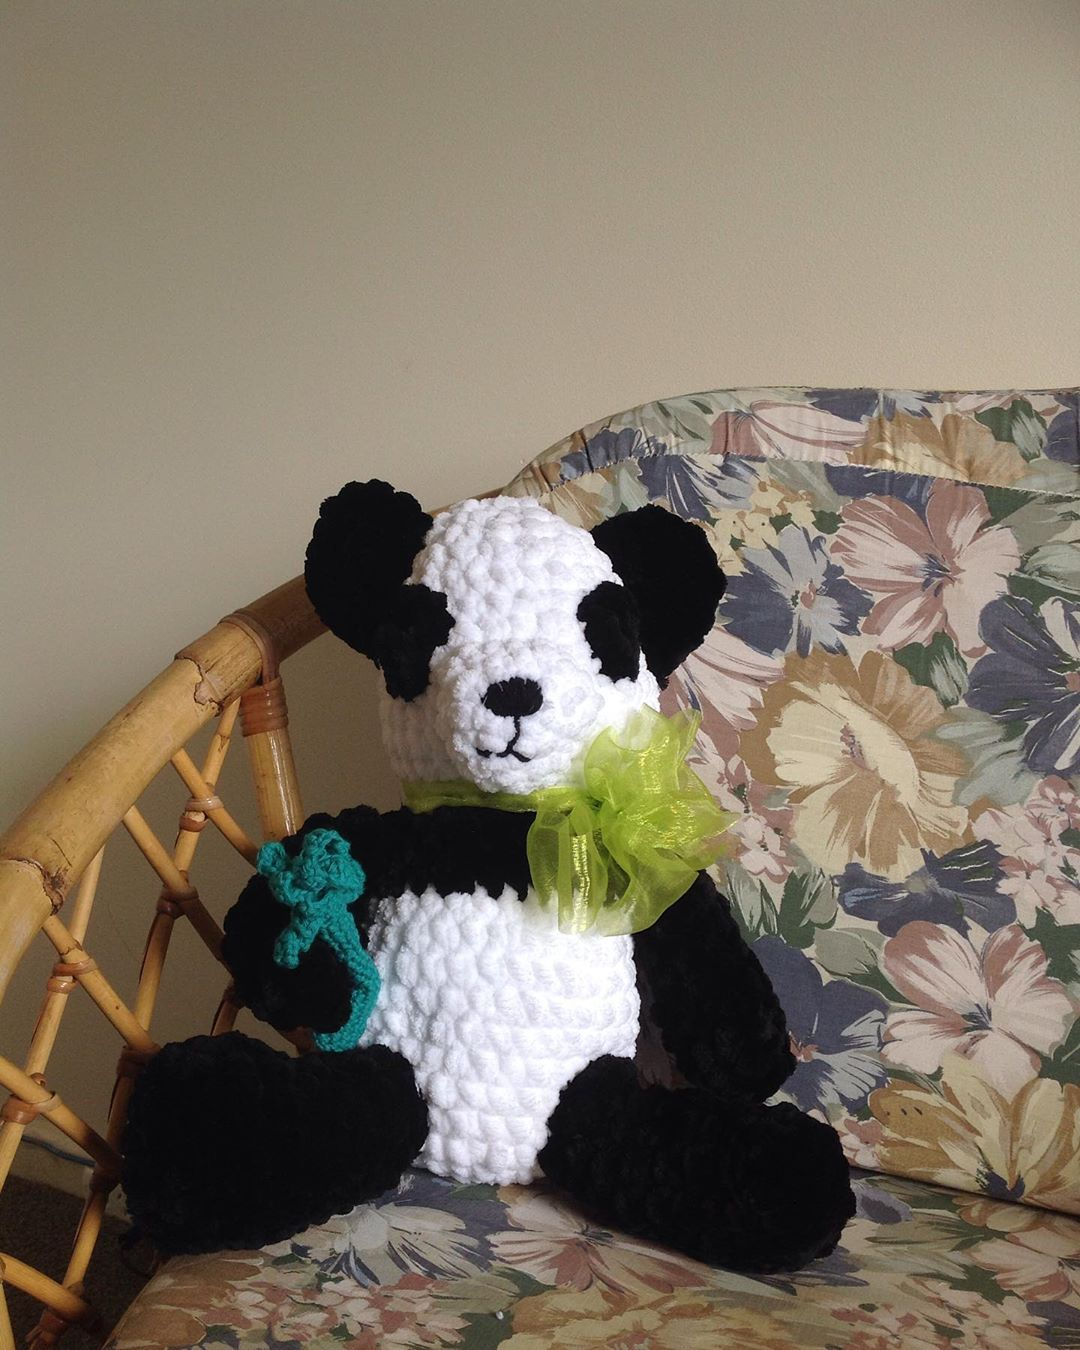 Guess who made a mess in my house last week It was my new creation Amanda Panda She is extremely cuddly and soft Except her fur which was literally everywhere including o...